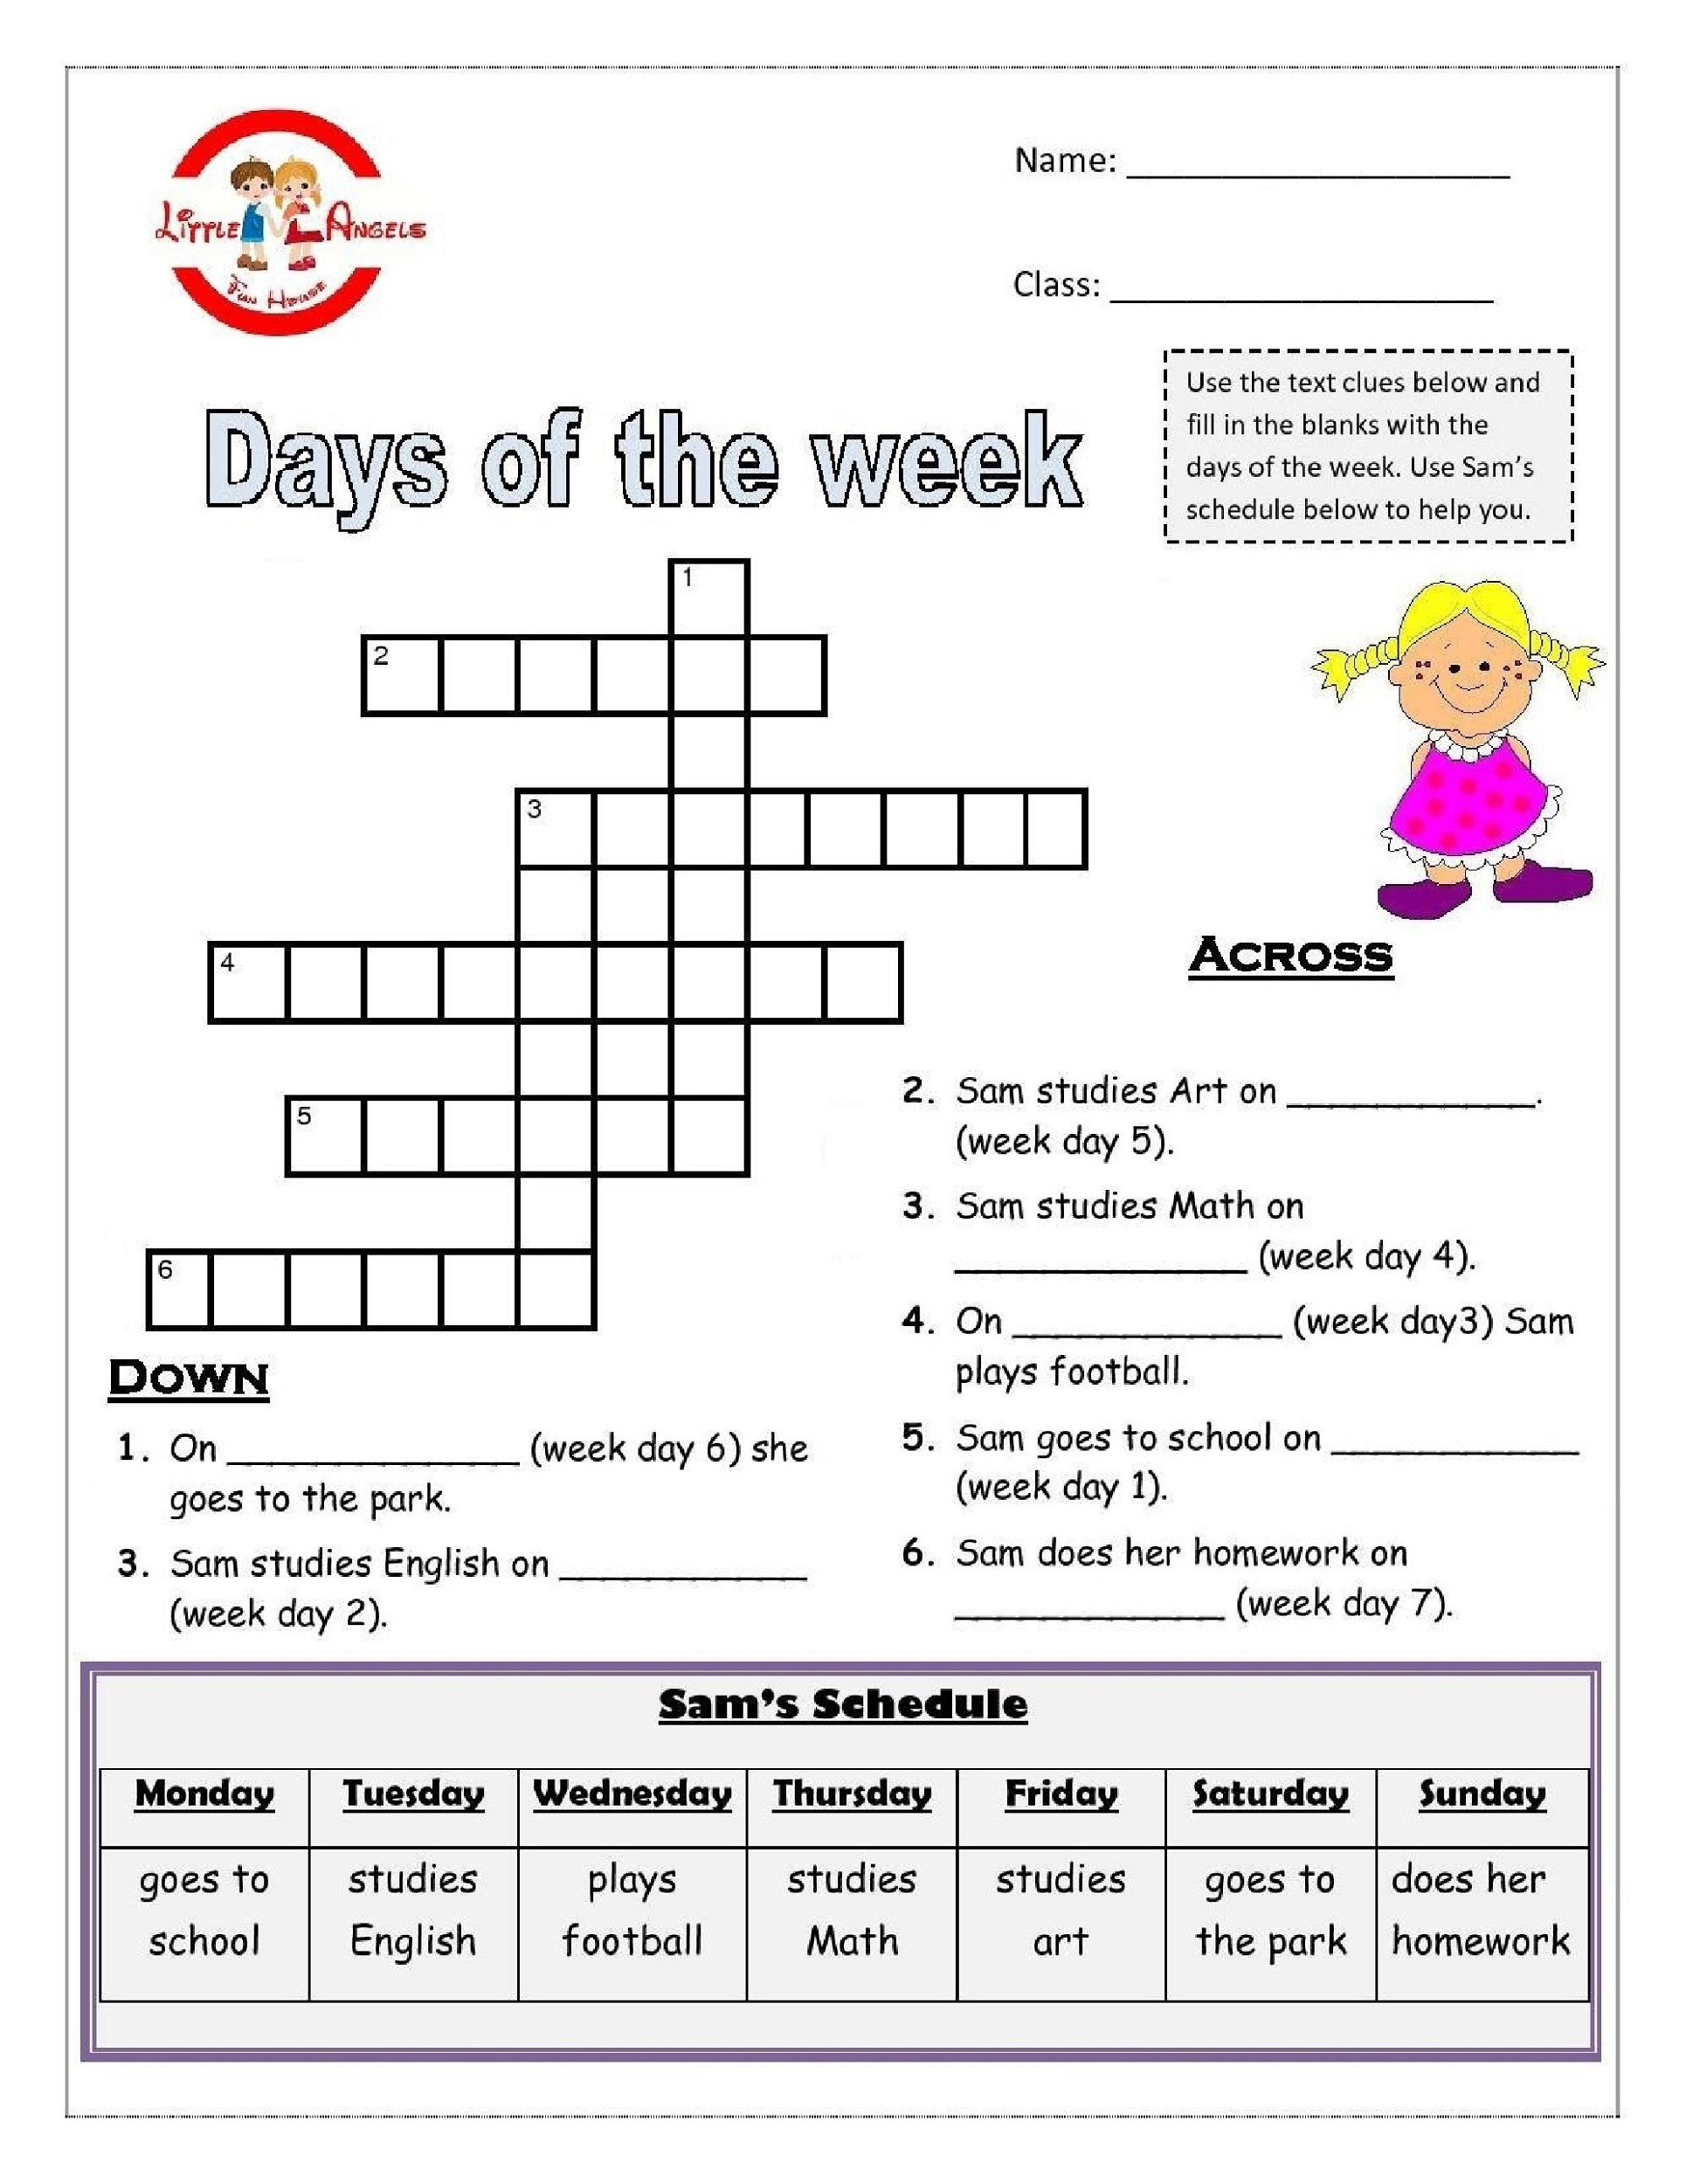 days of the week activities crossword